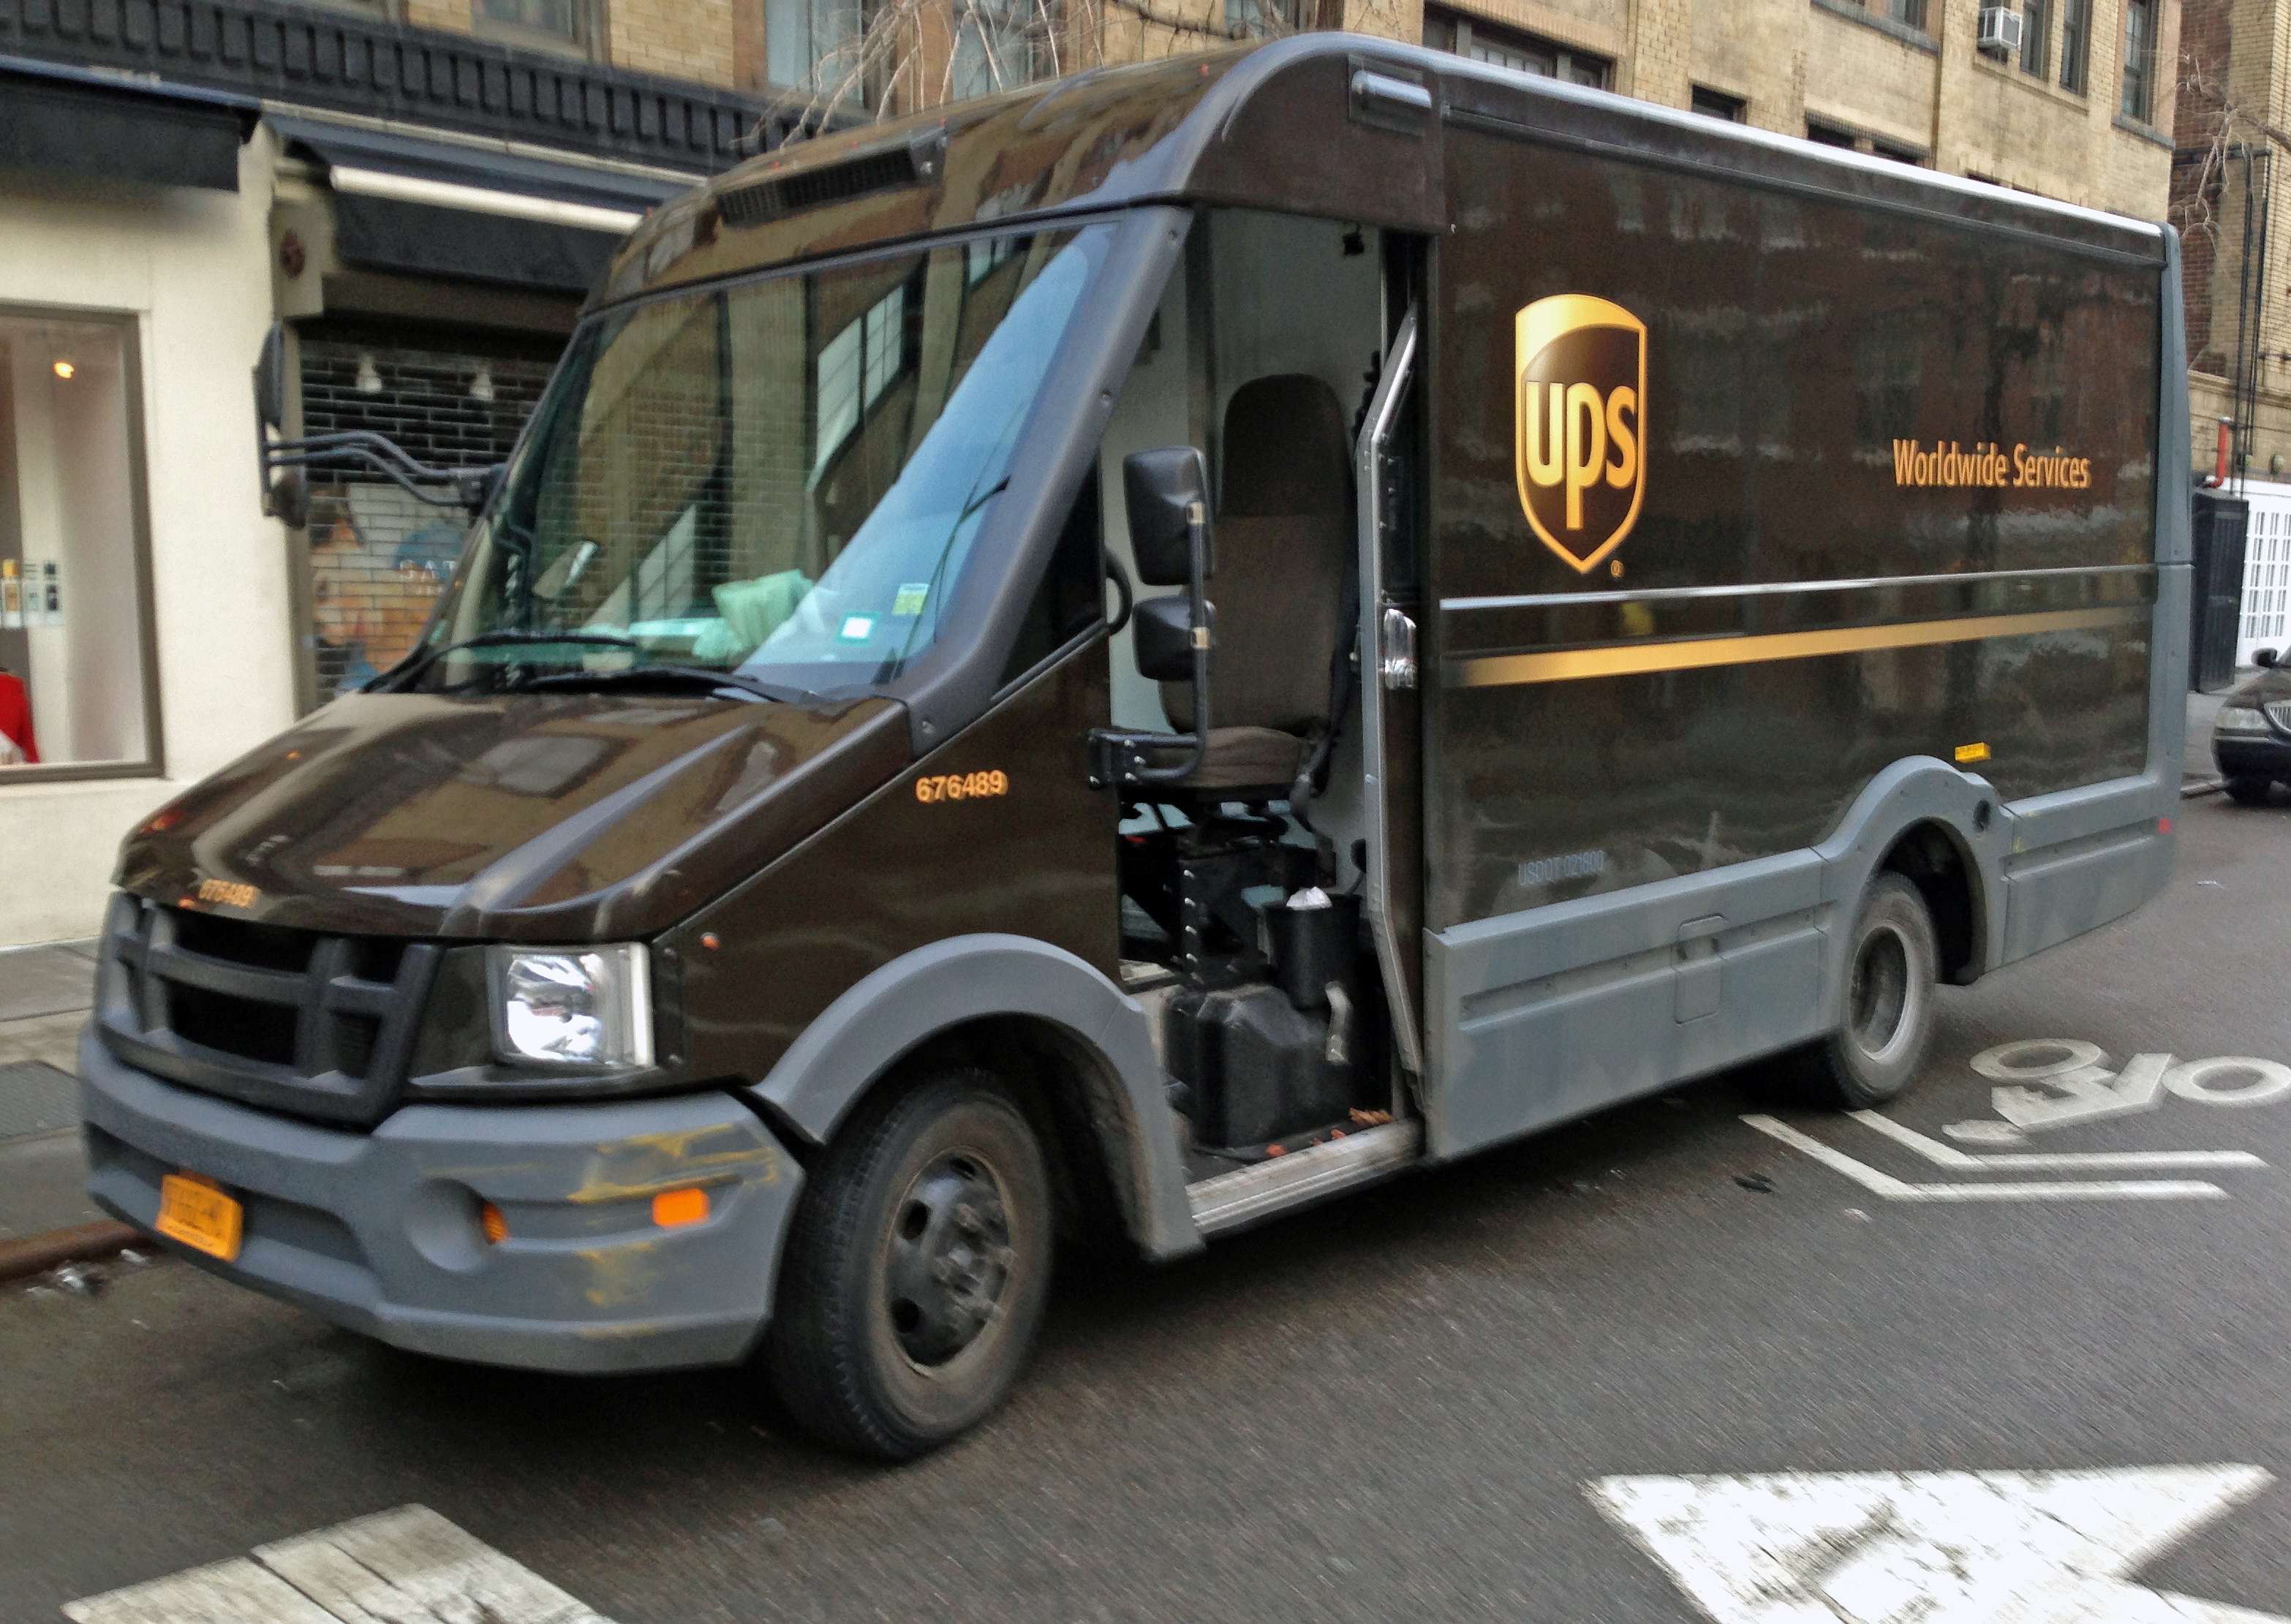 Ups Trucks For Sale >> File:2012 Isuzu Reach (UPS), NYC.jpg - Wikimedia Commons